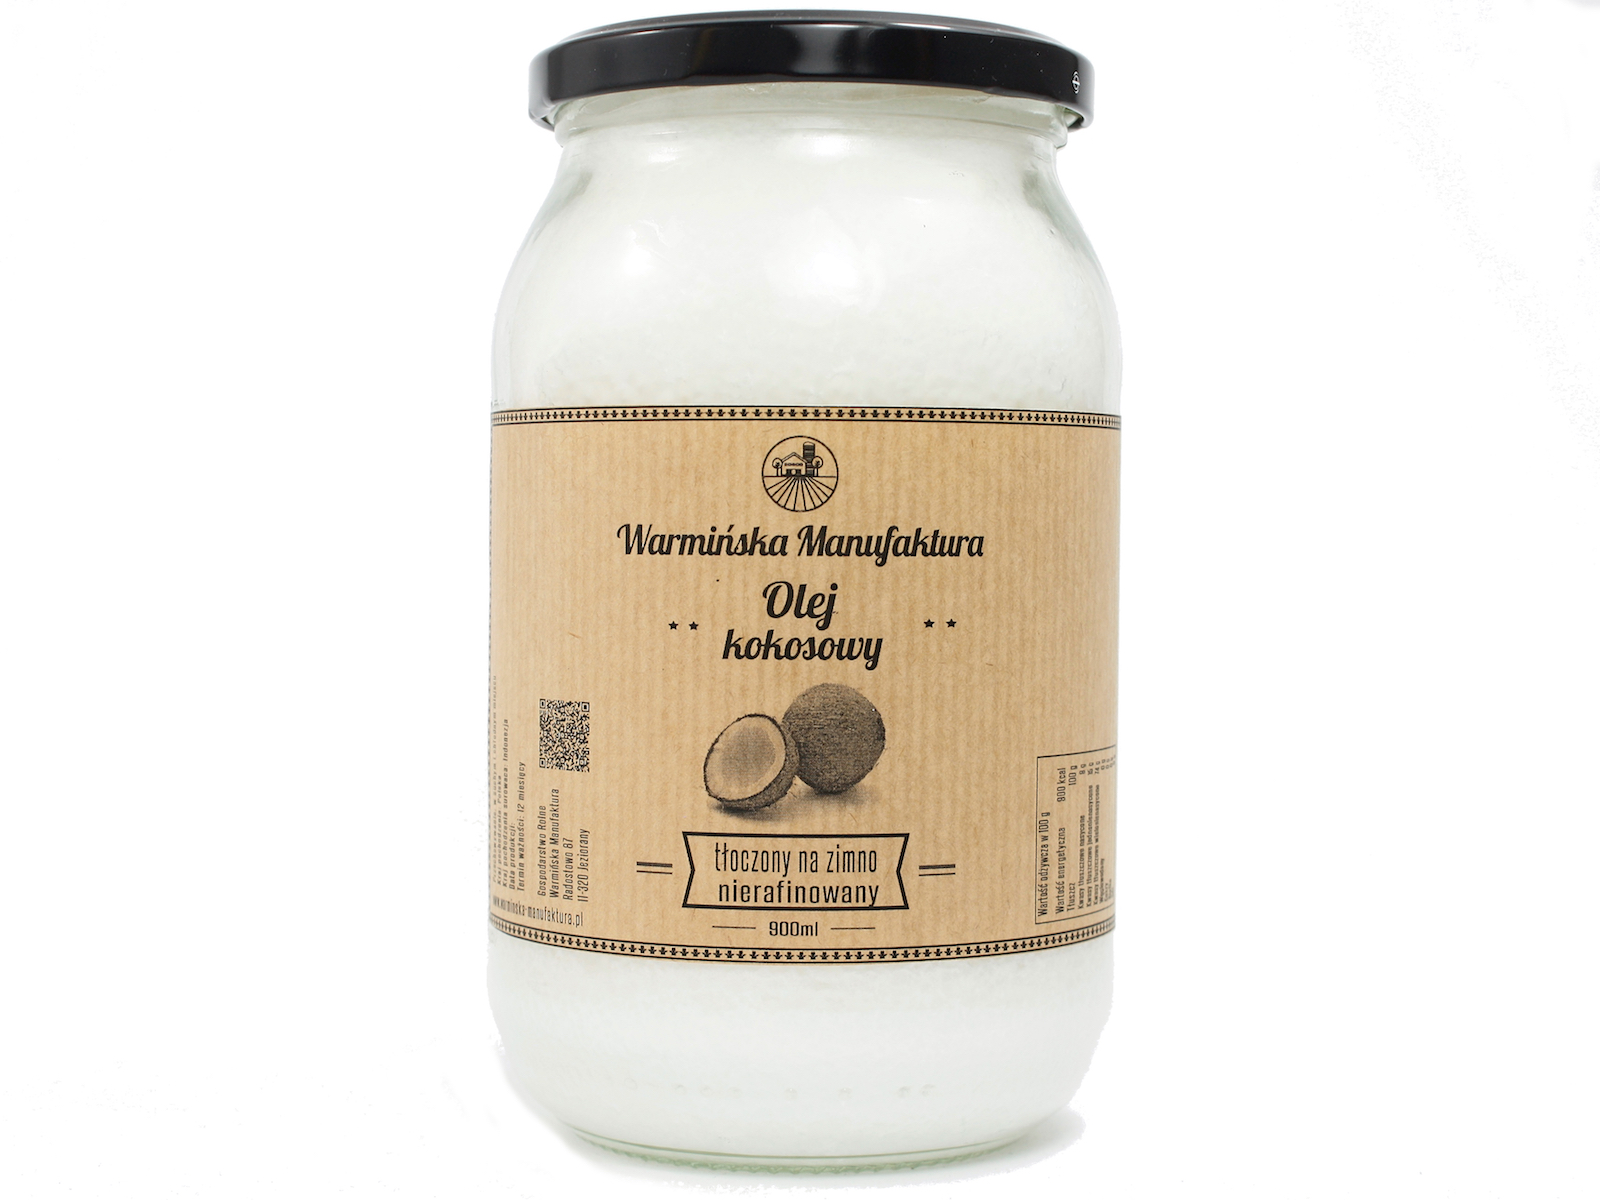 Item Coconut oil 900ml nierafinowany was the most important trading post of Manu.